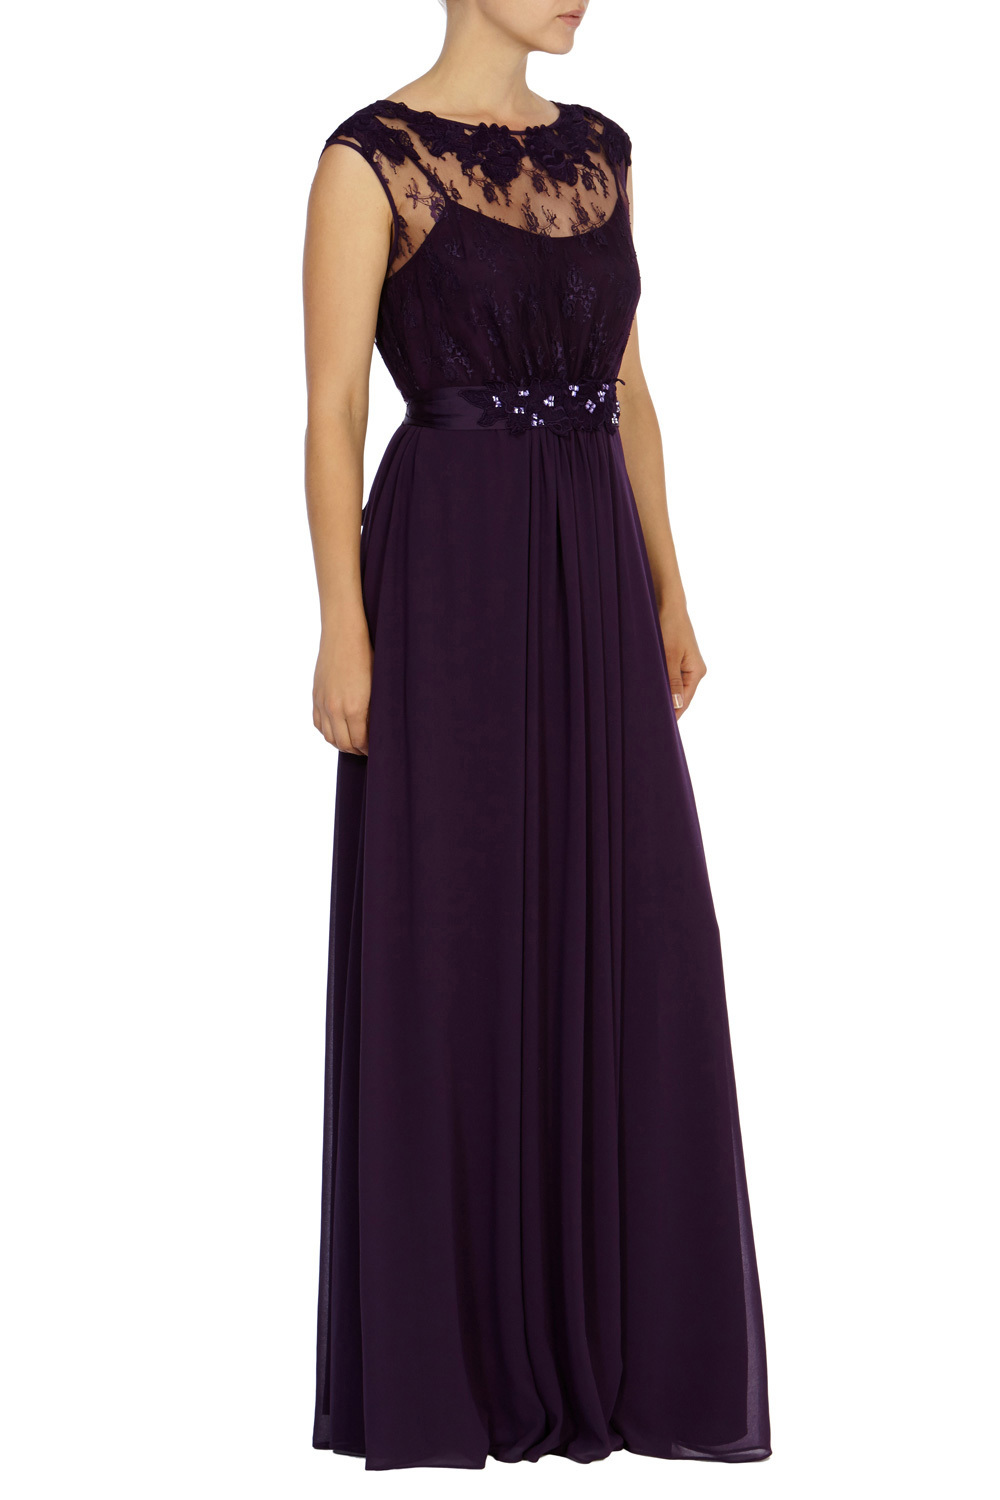 Lori May Maxi Dress Petite - neckline: round neck; pattern: plain; sleeve style: sleeveless; style: maxi dress; waist detail: embellishment at waist/feature waistband; predominant colour: aubergine; occasions: evening, occasion; length: floor length; fit: fitted at waist & bust; sleeve length: short sleeve; texture group: sheer fabrics/chiffon/organza etc.; pattern type: fabric; embellishment: lace; season: s/s 2015